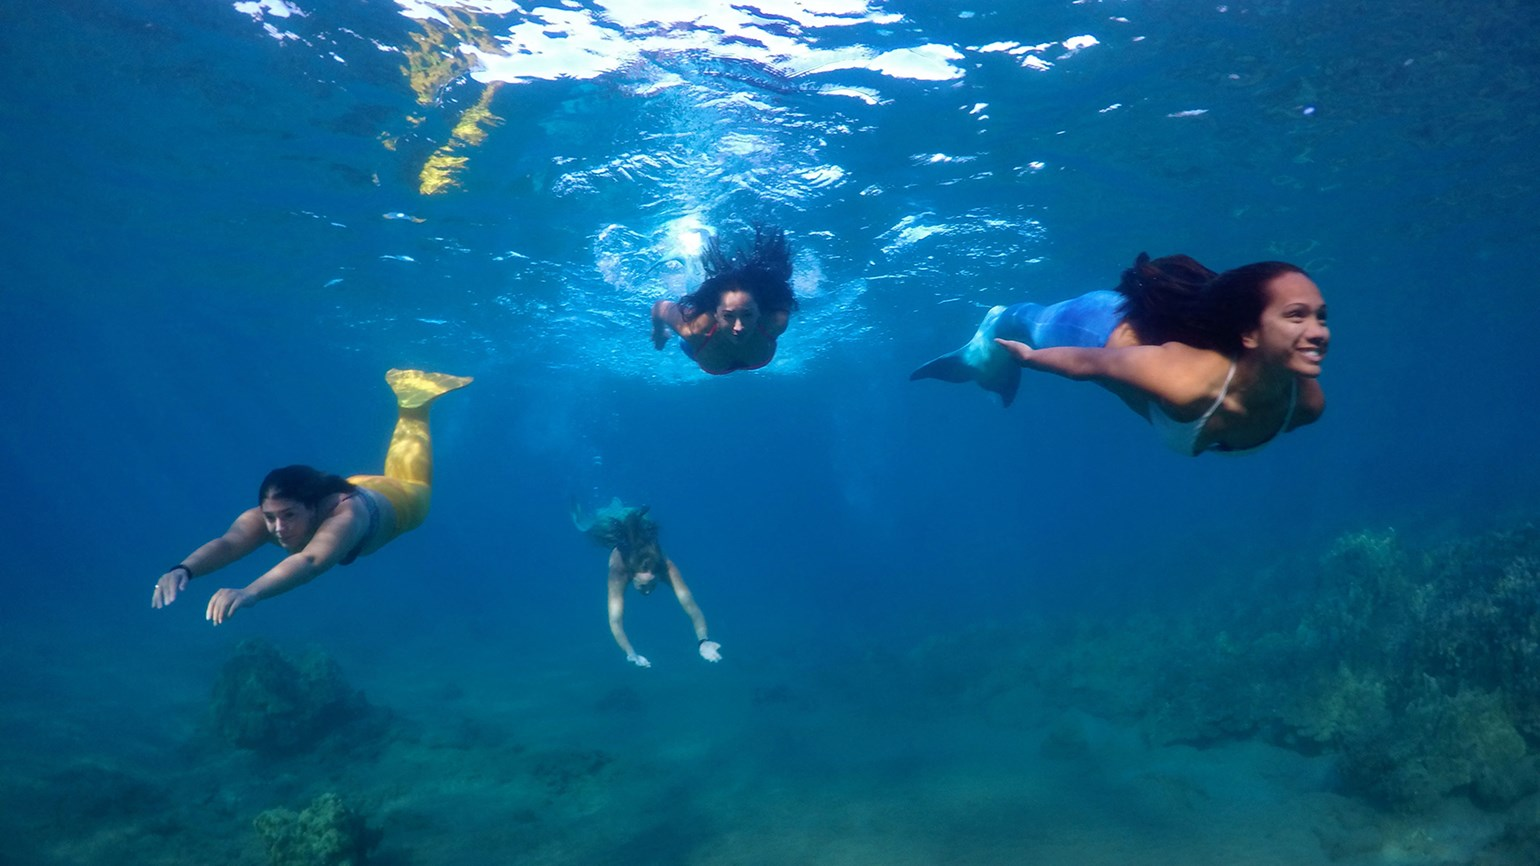 Maui welcomes new mermaid adventure